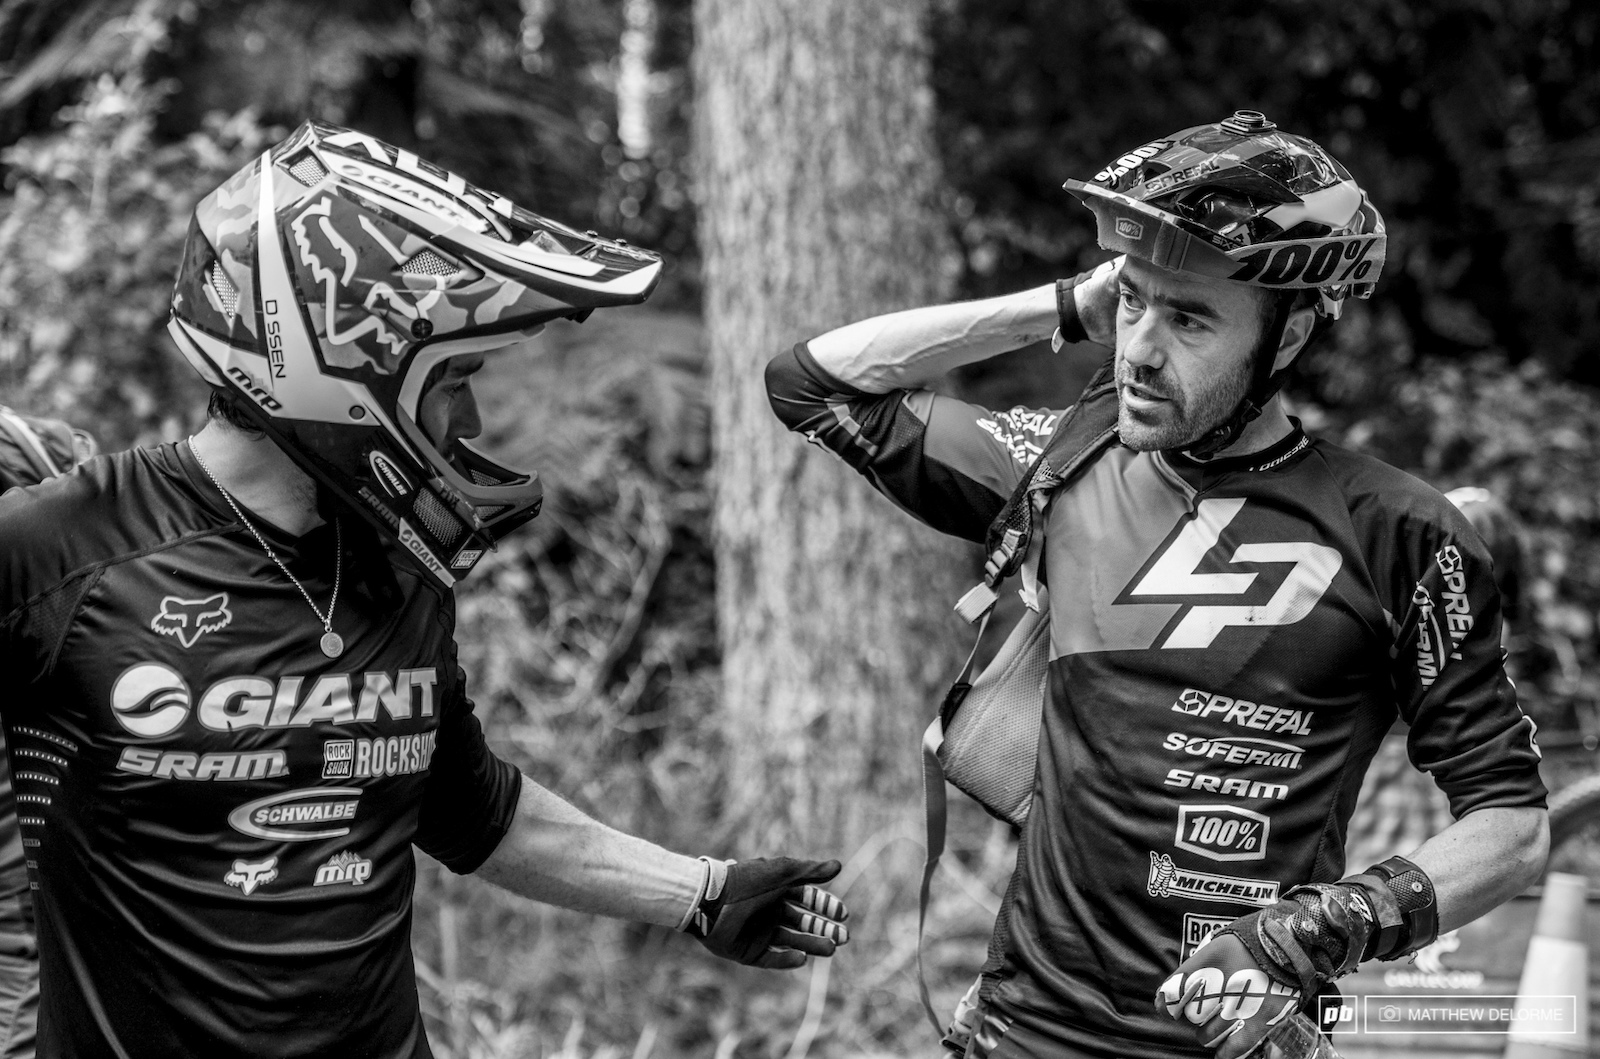 Vouilloz and Barelli have a chat before the transfer between stages four and five. Barelli injured his calf and decided to pull out of the race.